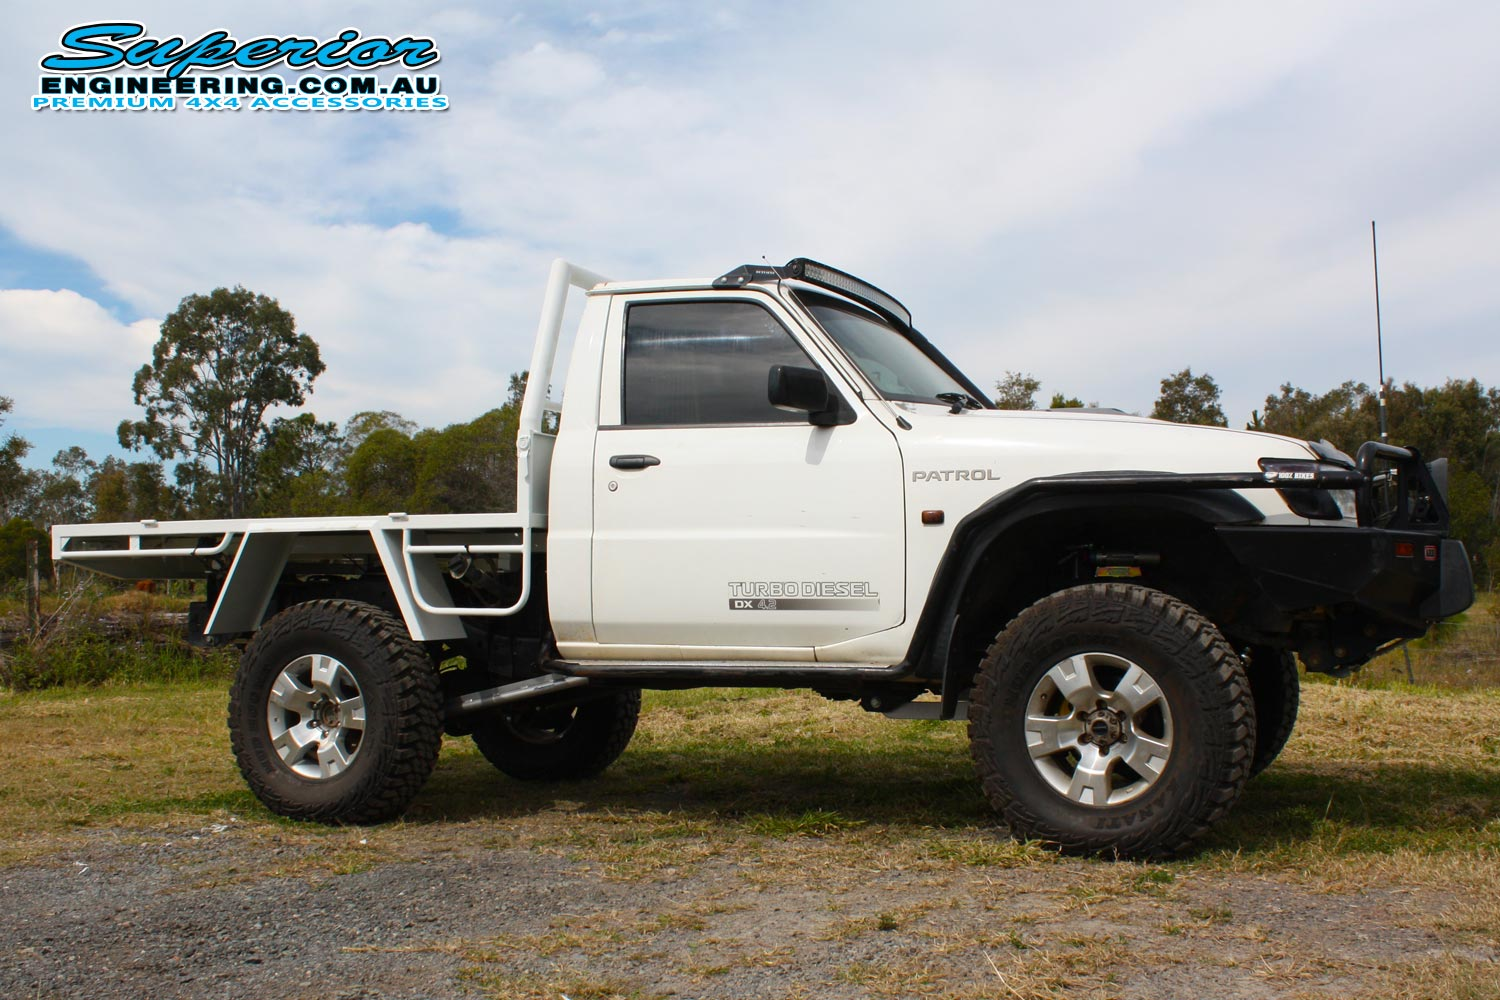 Right side view of a white GU Nissan Patrol ute after being fitted with a complete Superior Engineering 4x4 accessory and suspension fitout